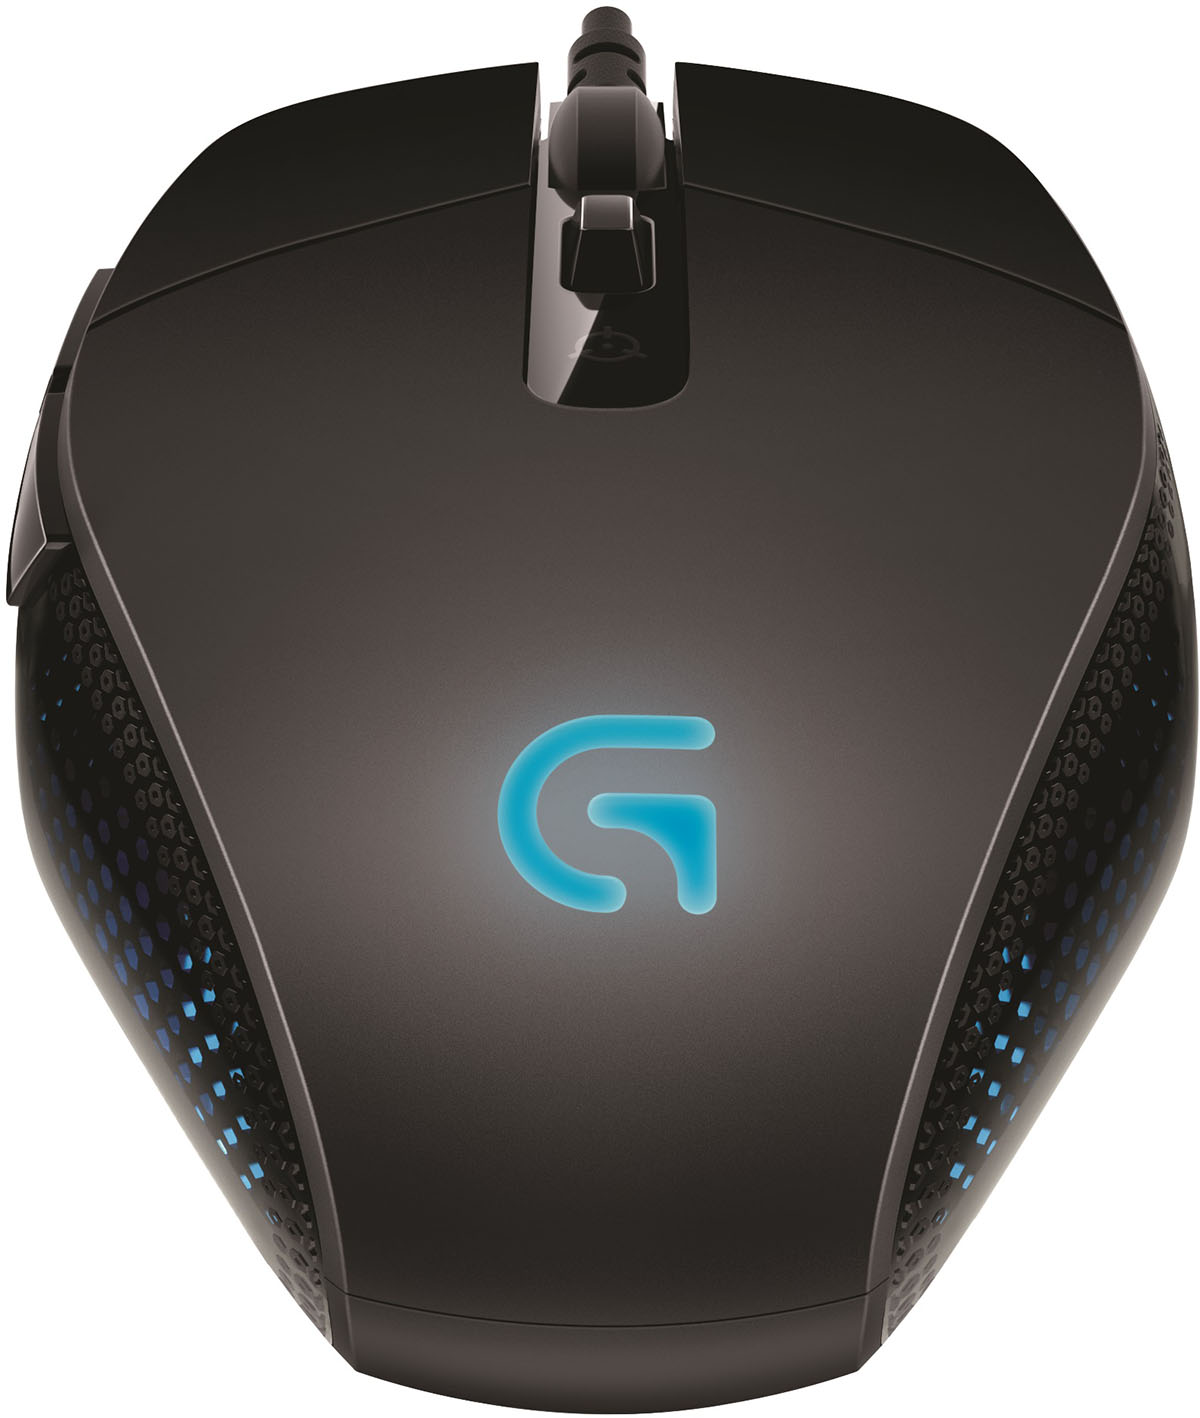 54f7e0f7d11 New Logitech G302 Daedalus Prime Gaming Mouse is Optimized for MOBAs ...